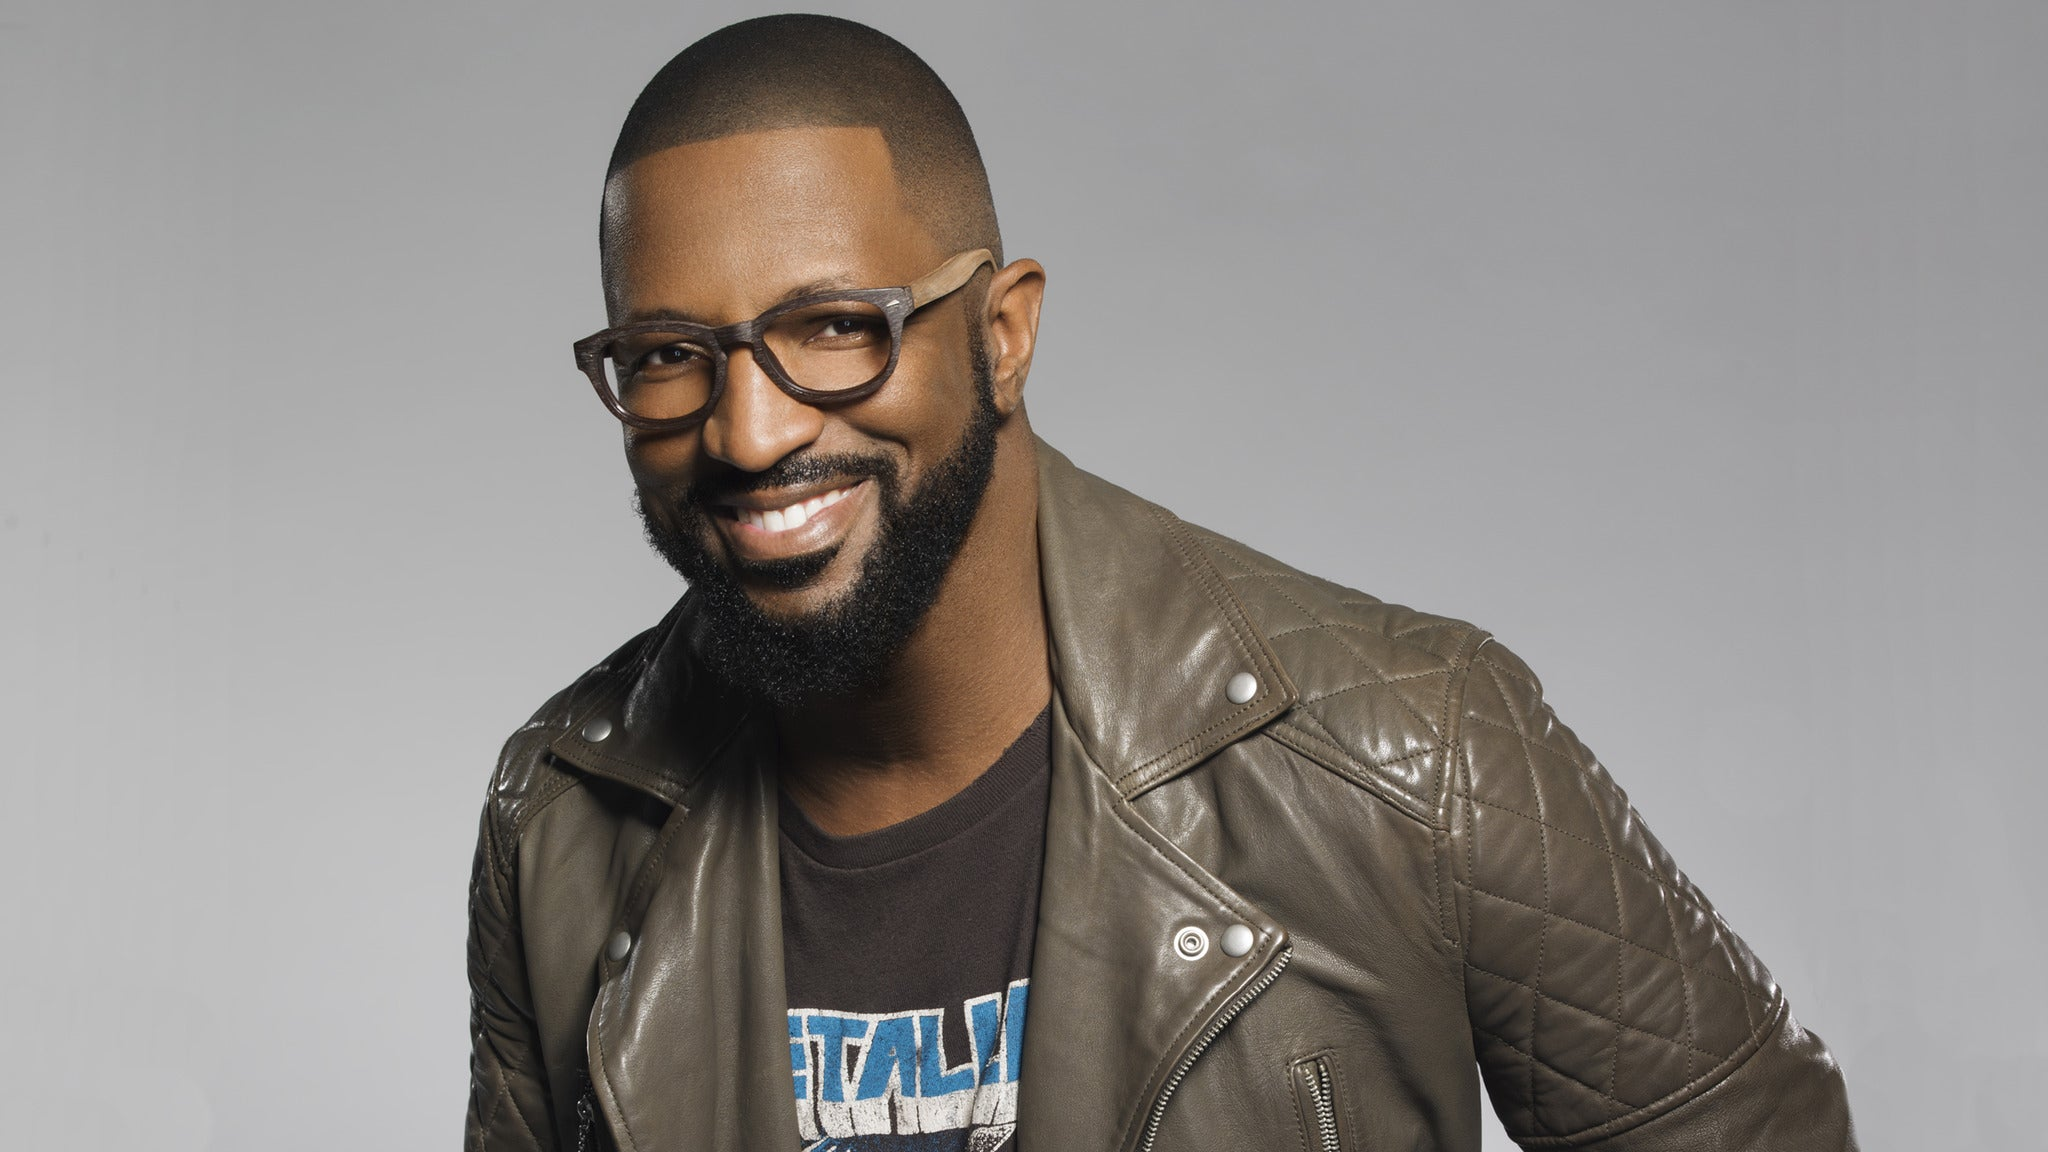 Rickey Smiley at Germain Arena